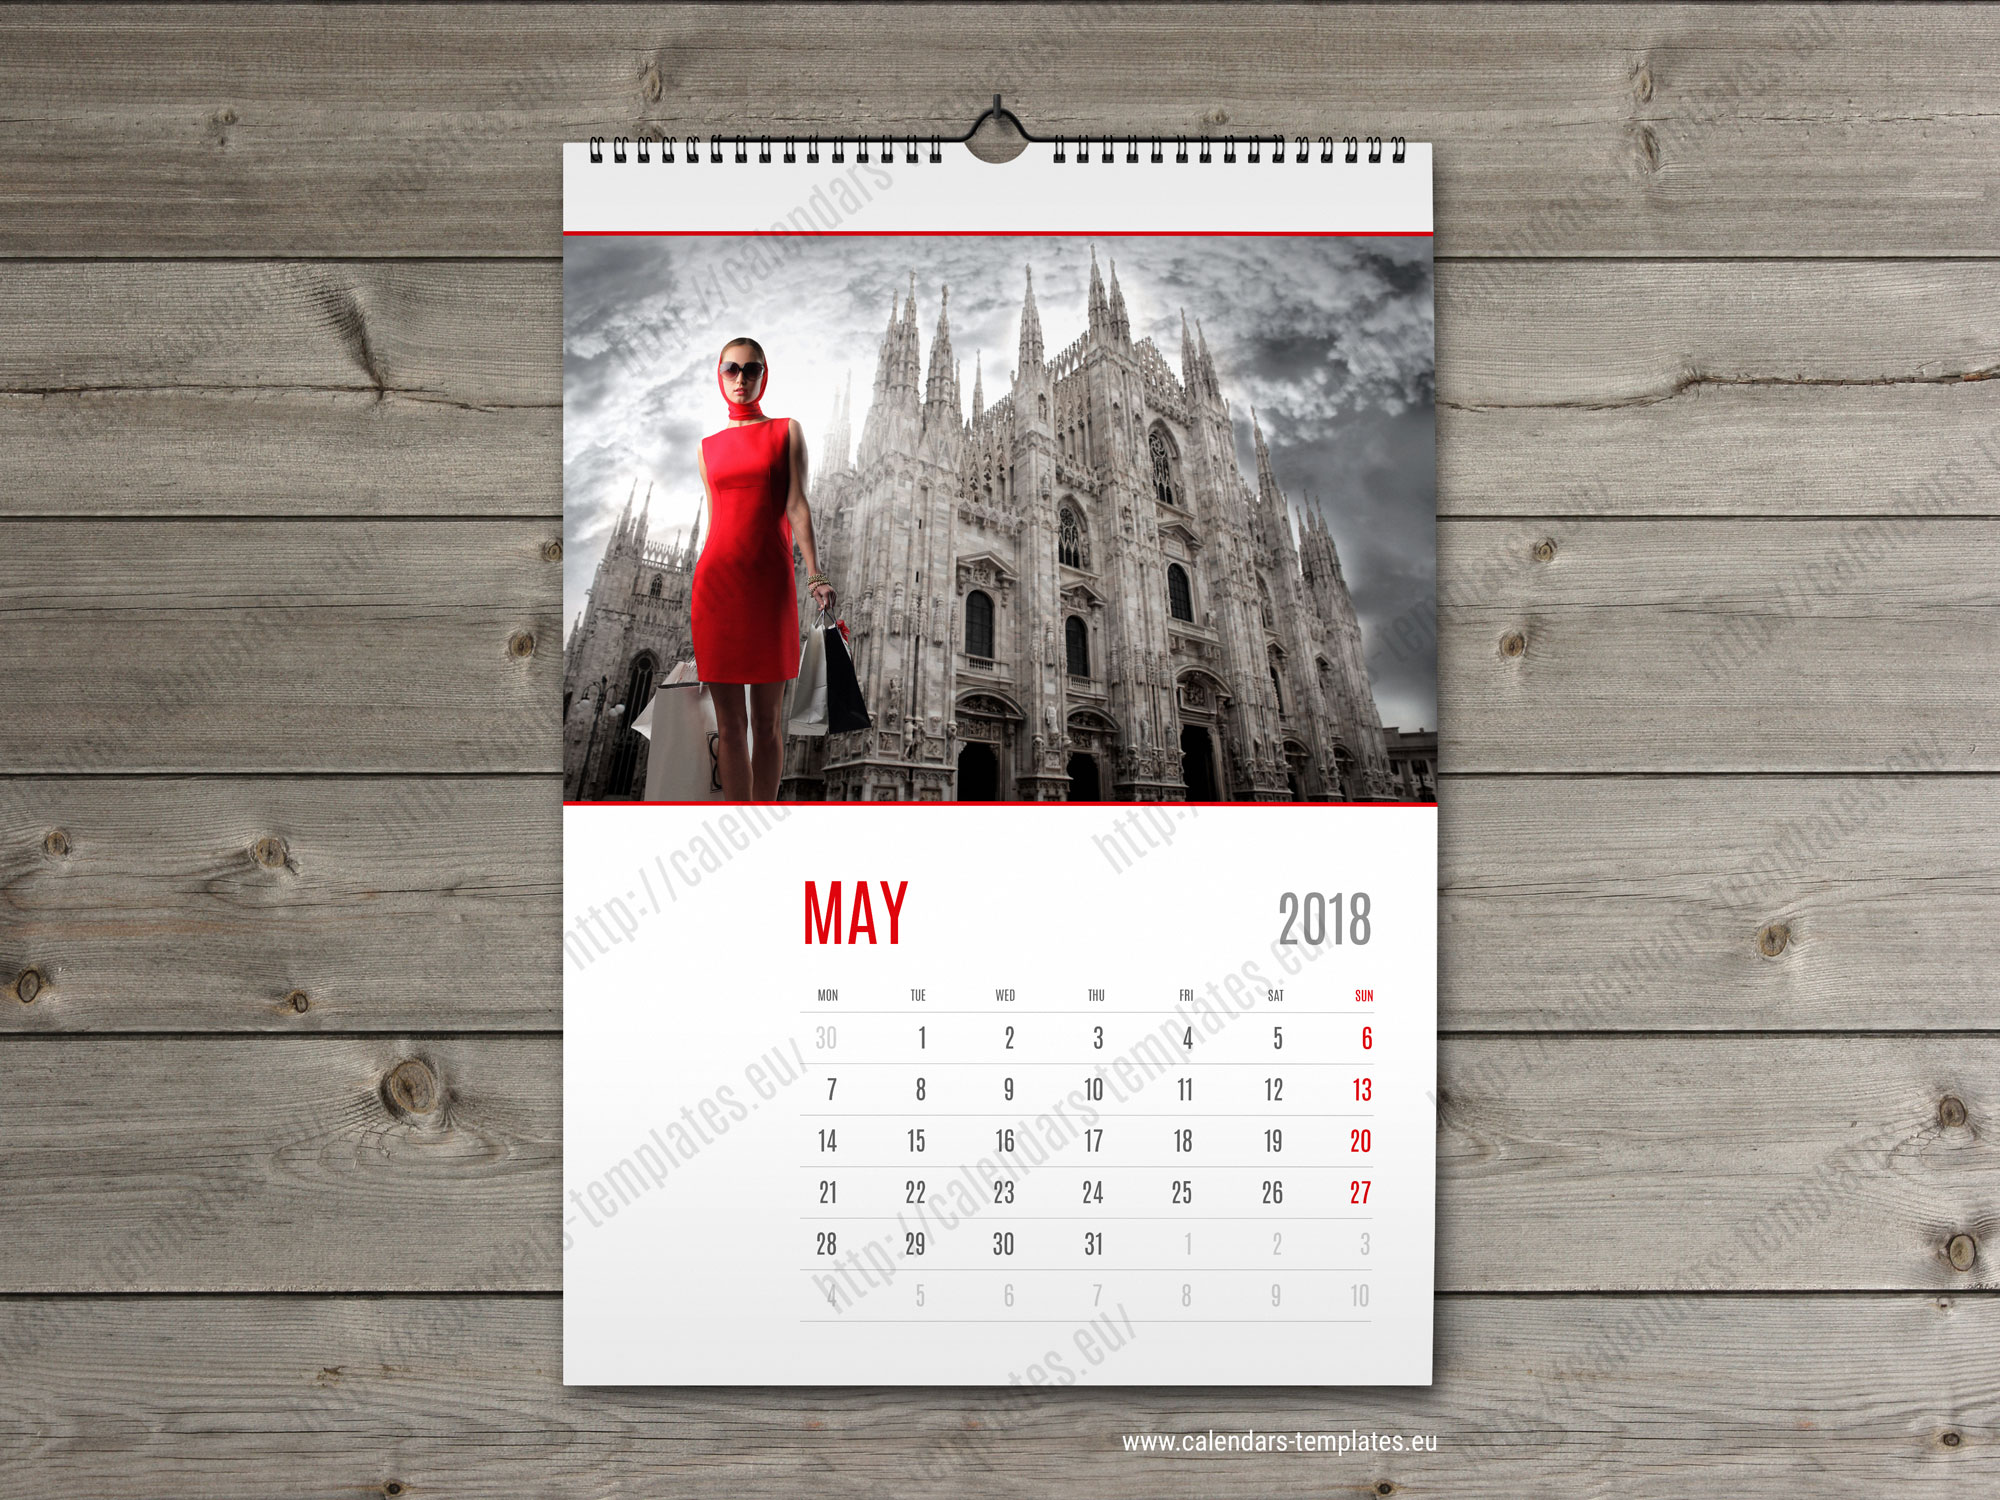 Wall Calendar Design Templates : Wall calendar template monthyly yearly custom